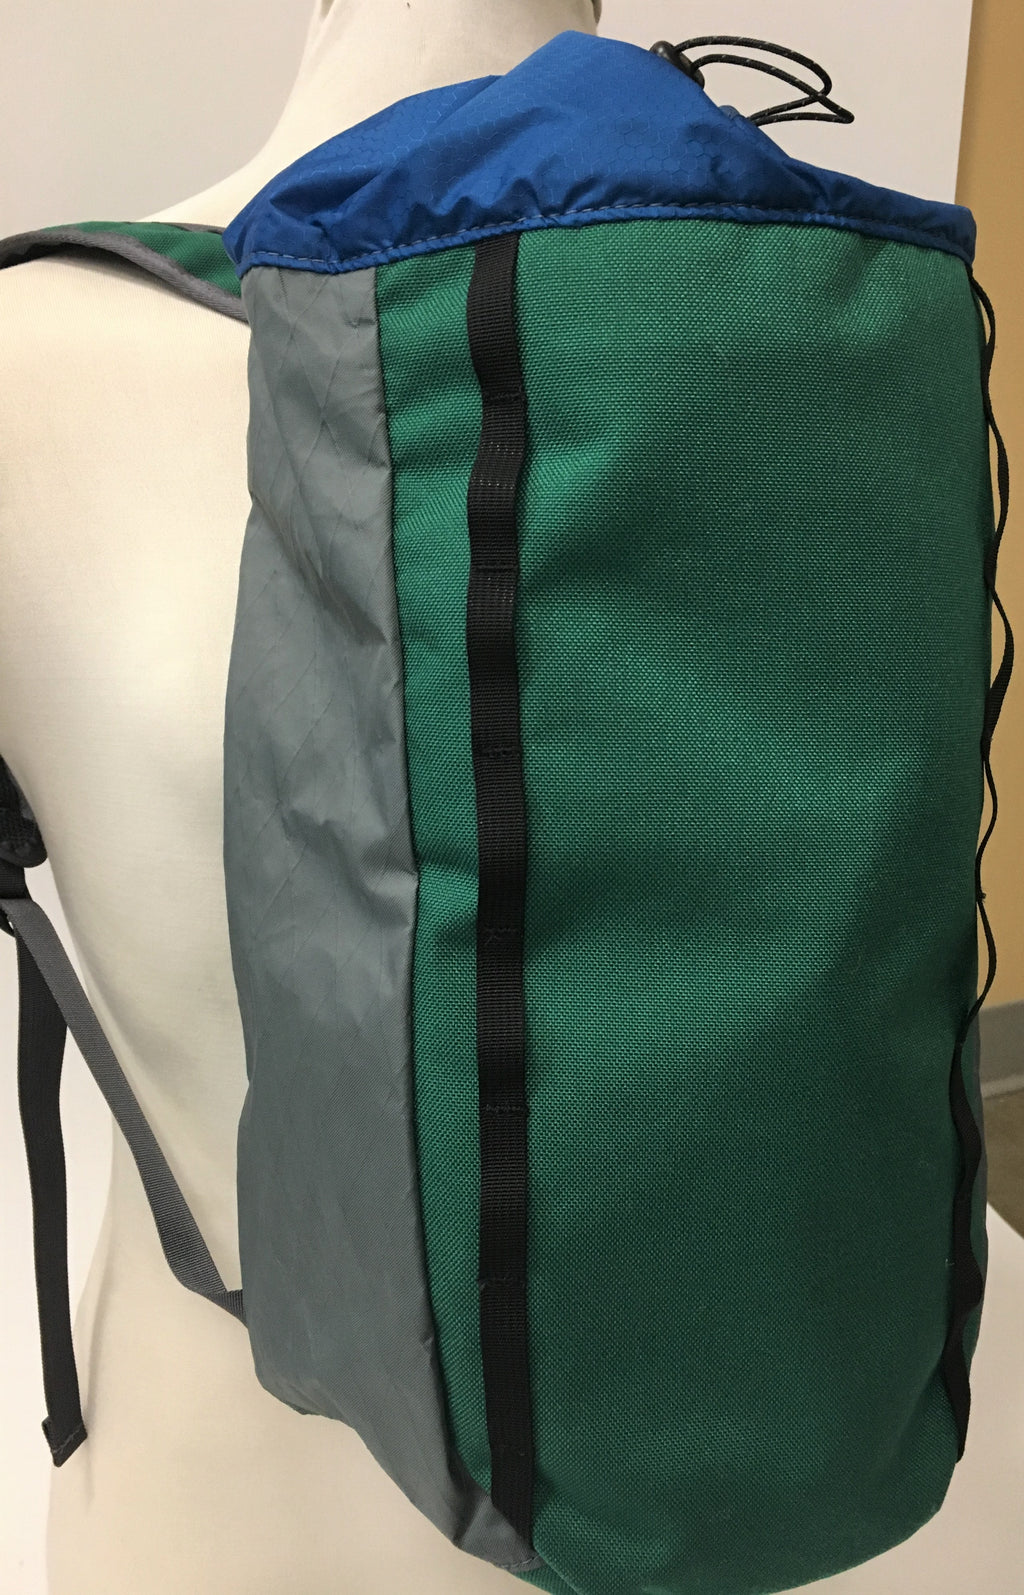 LUSB171 Ultralight Day Pack Green/Blue Side View